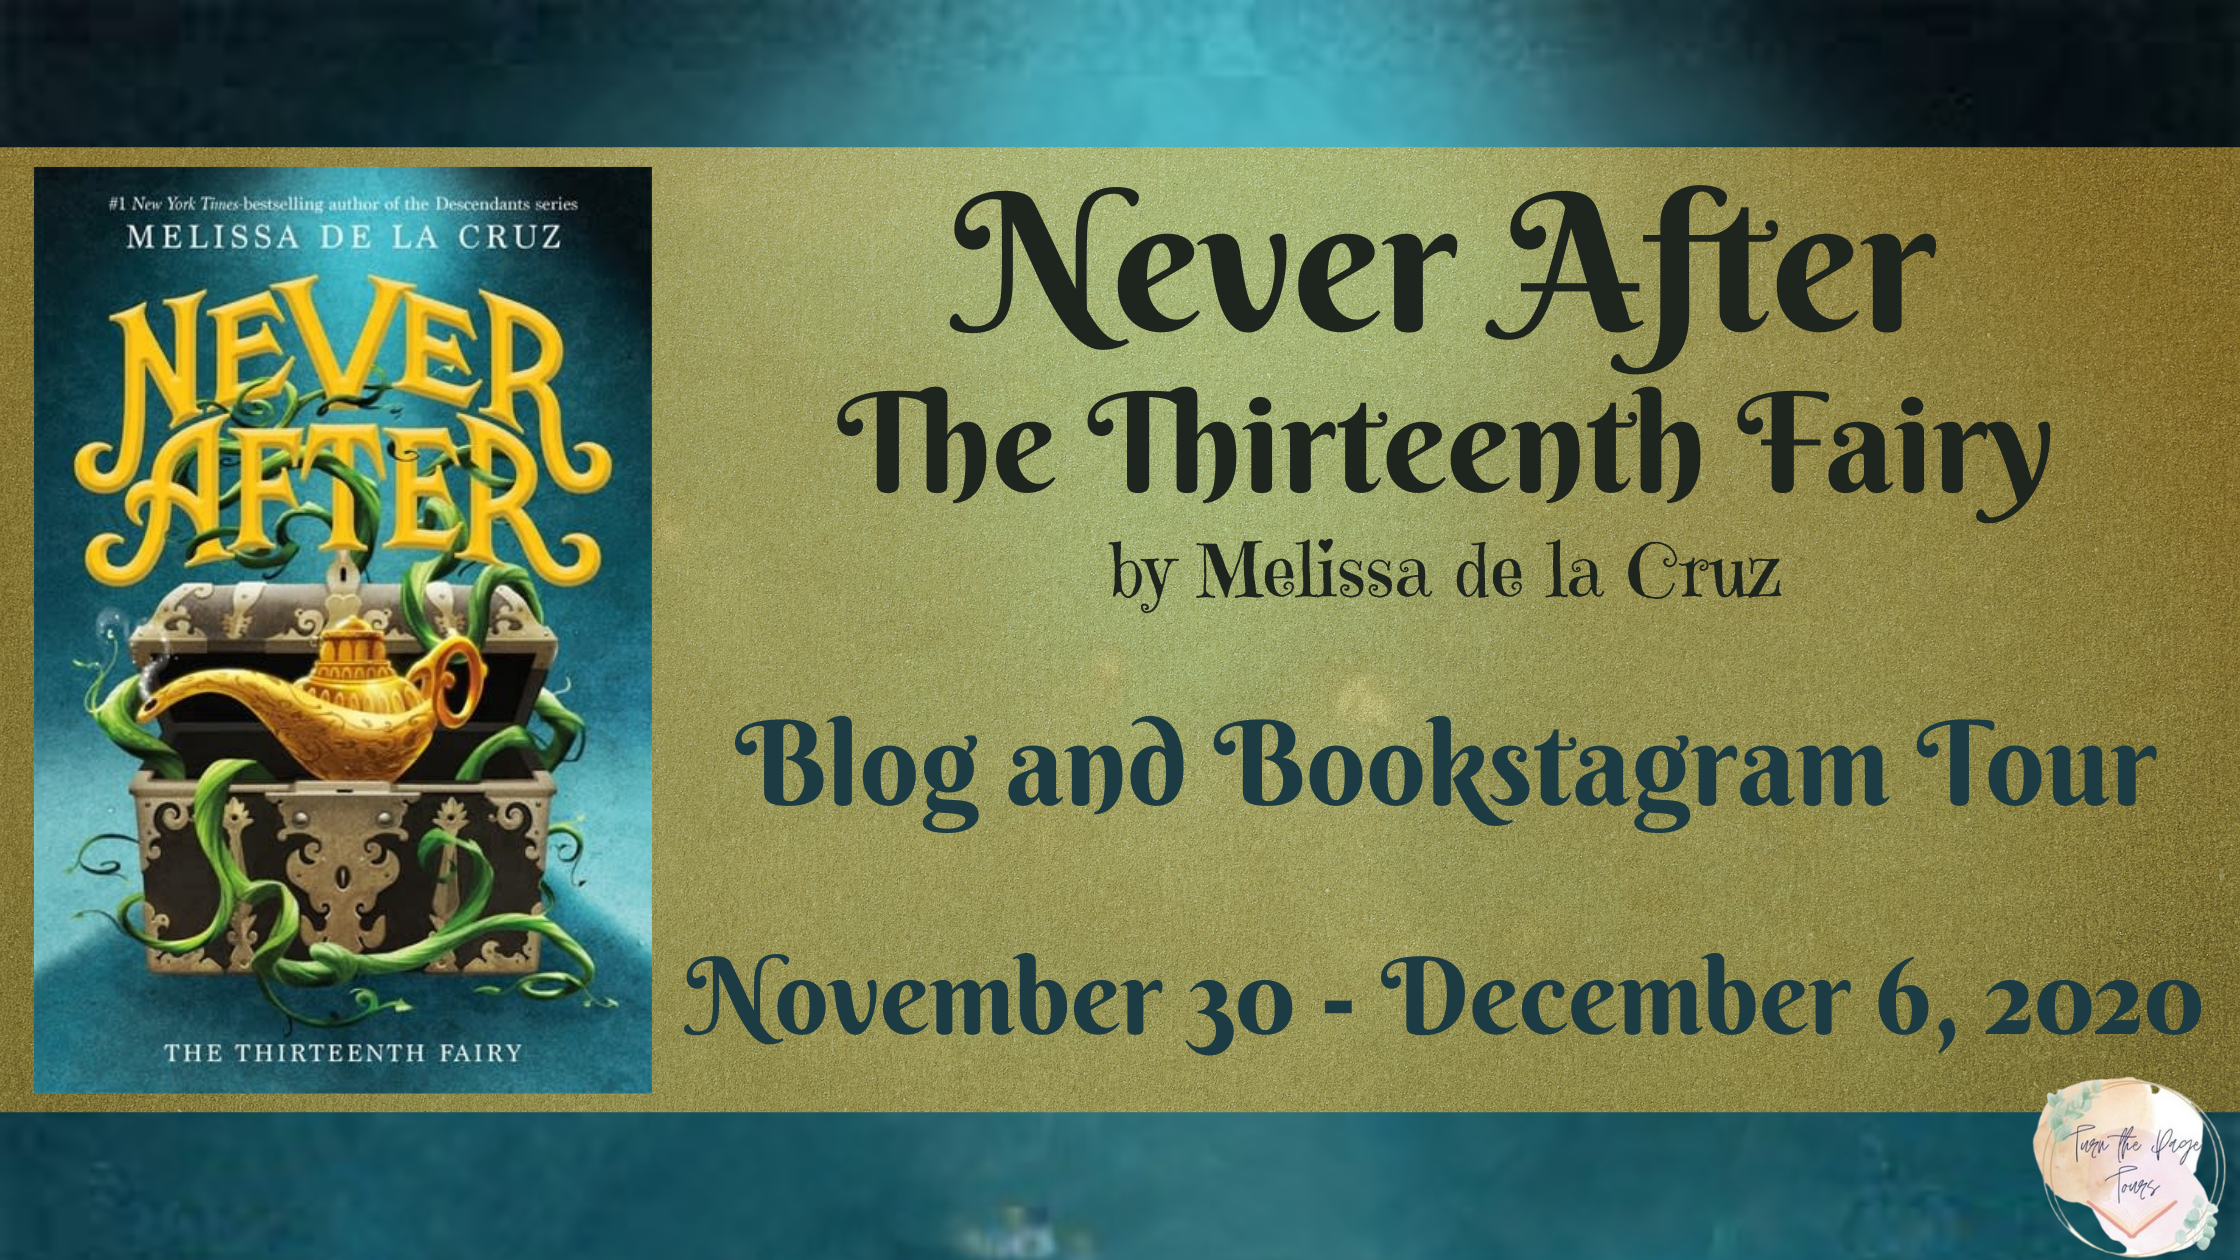 Blog Tour: Never After: The Thirteenth Fairy by Melissa de la Cruz (Creative Post + Bookstagram + Giveaway!)